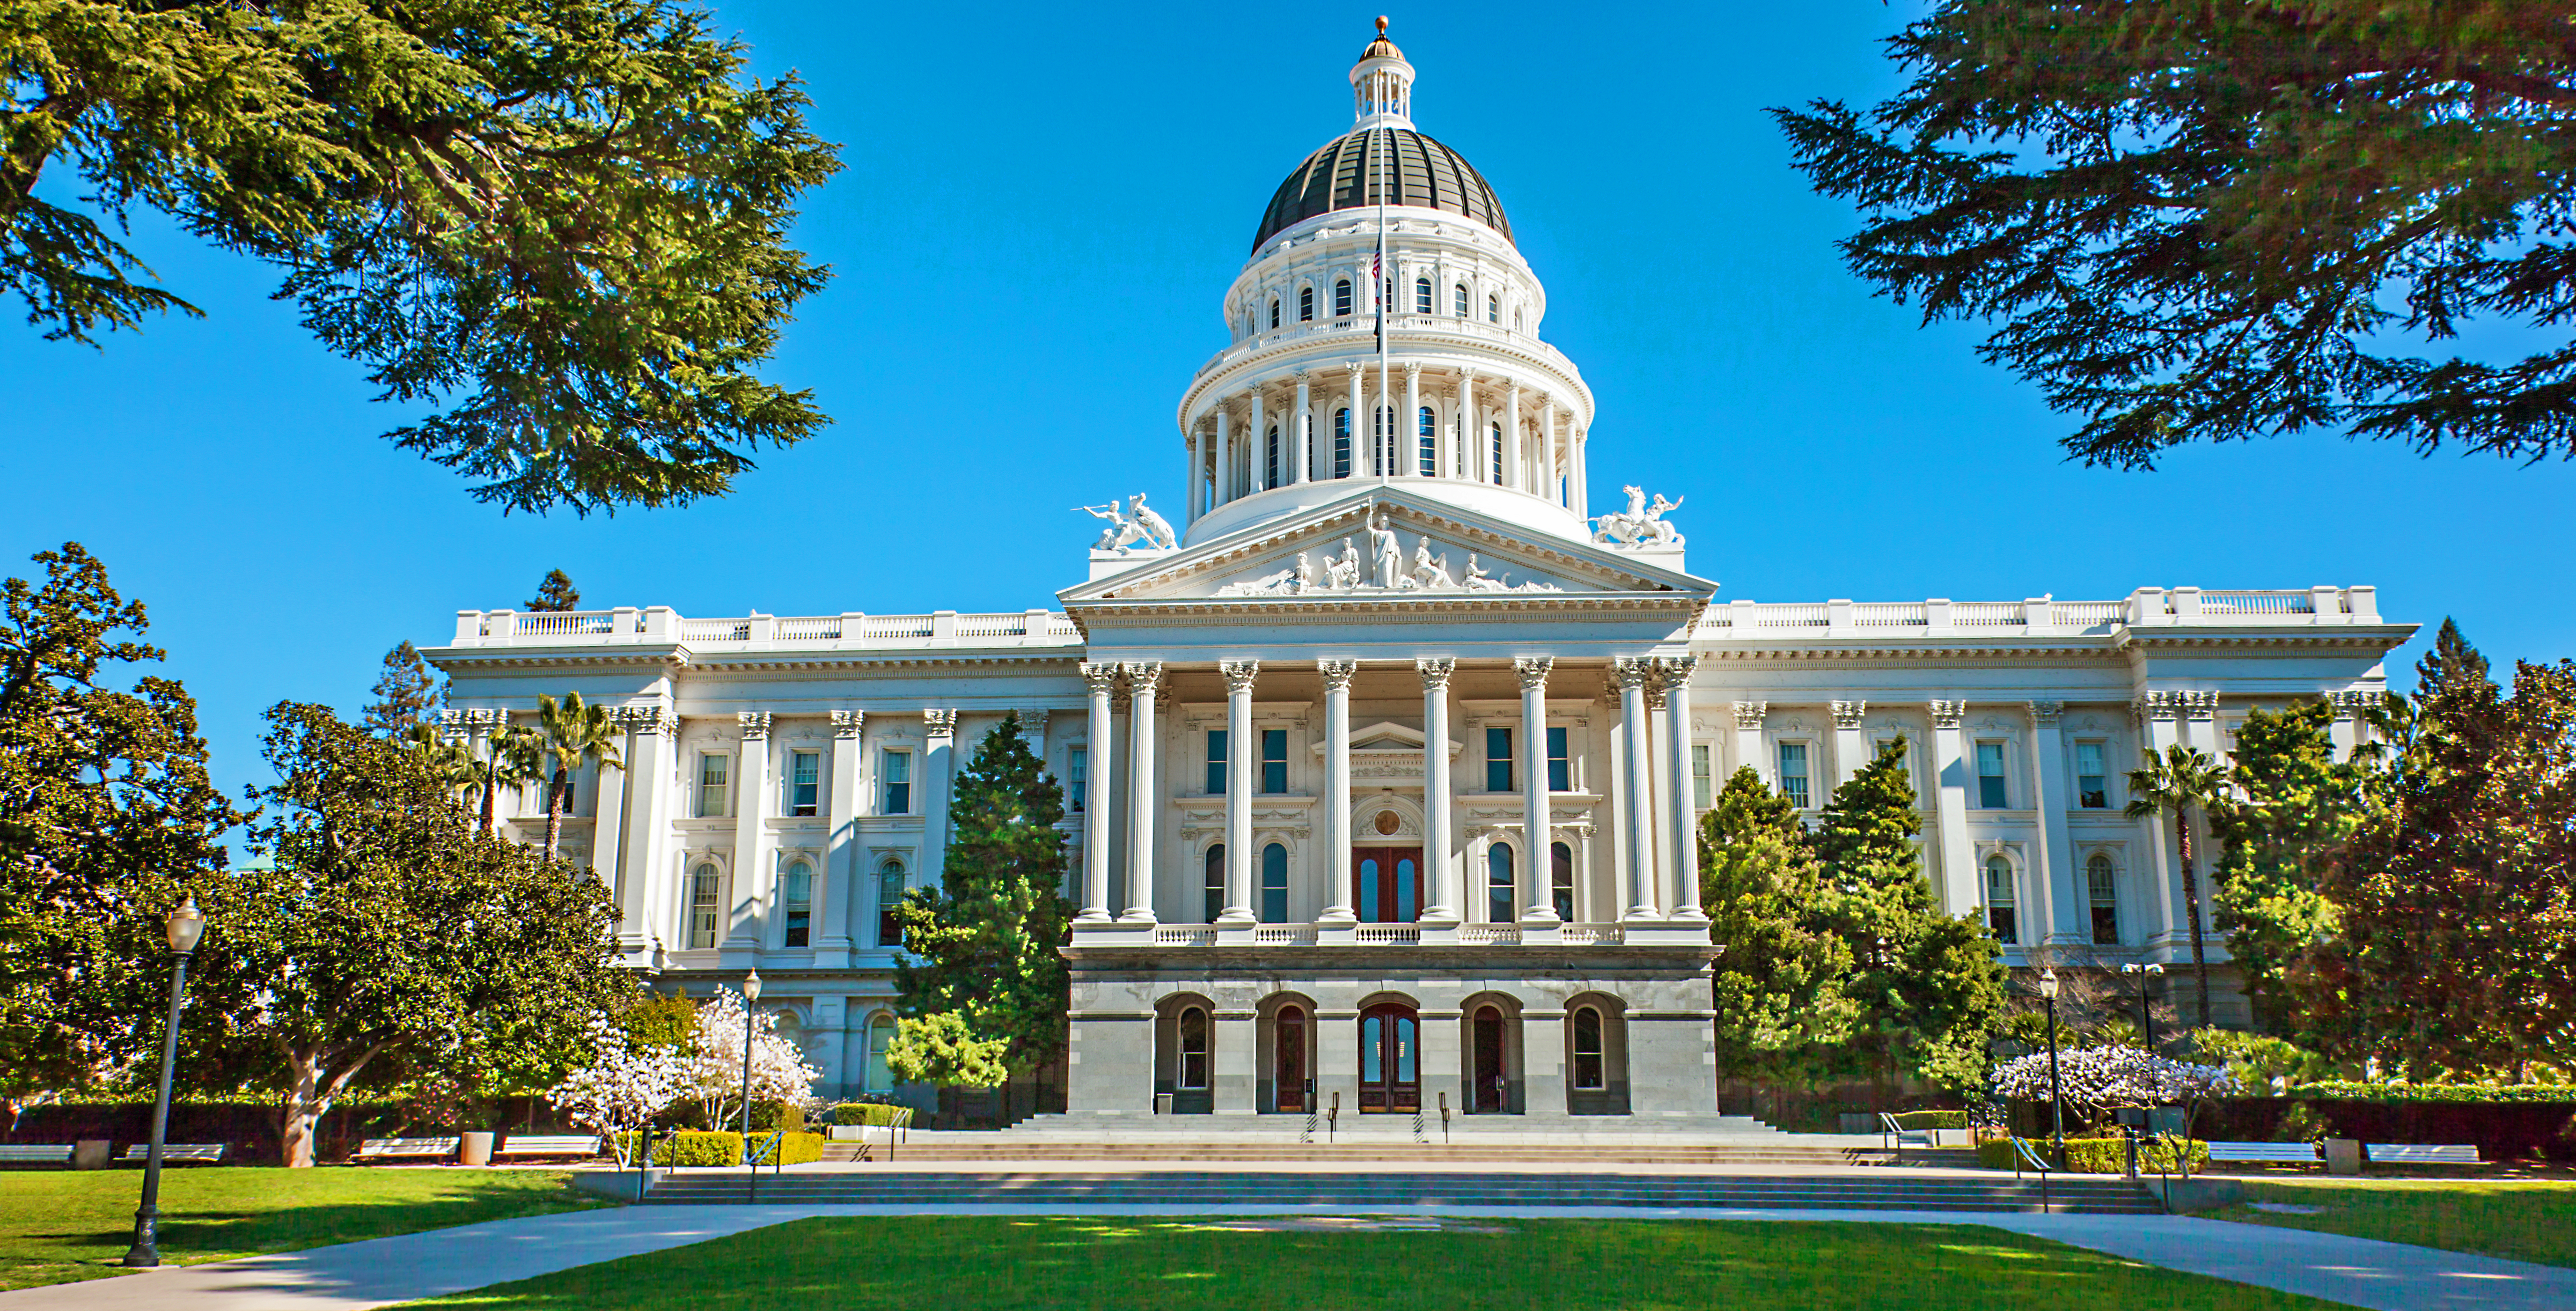 Irwin is in her third term as a California Assemblywoman. (Shutterstock/SchnepfDesign)